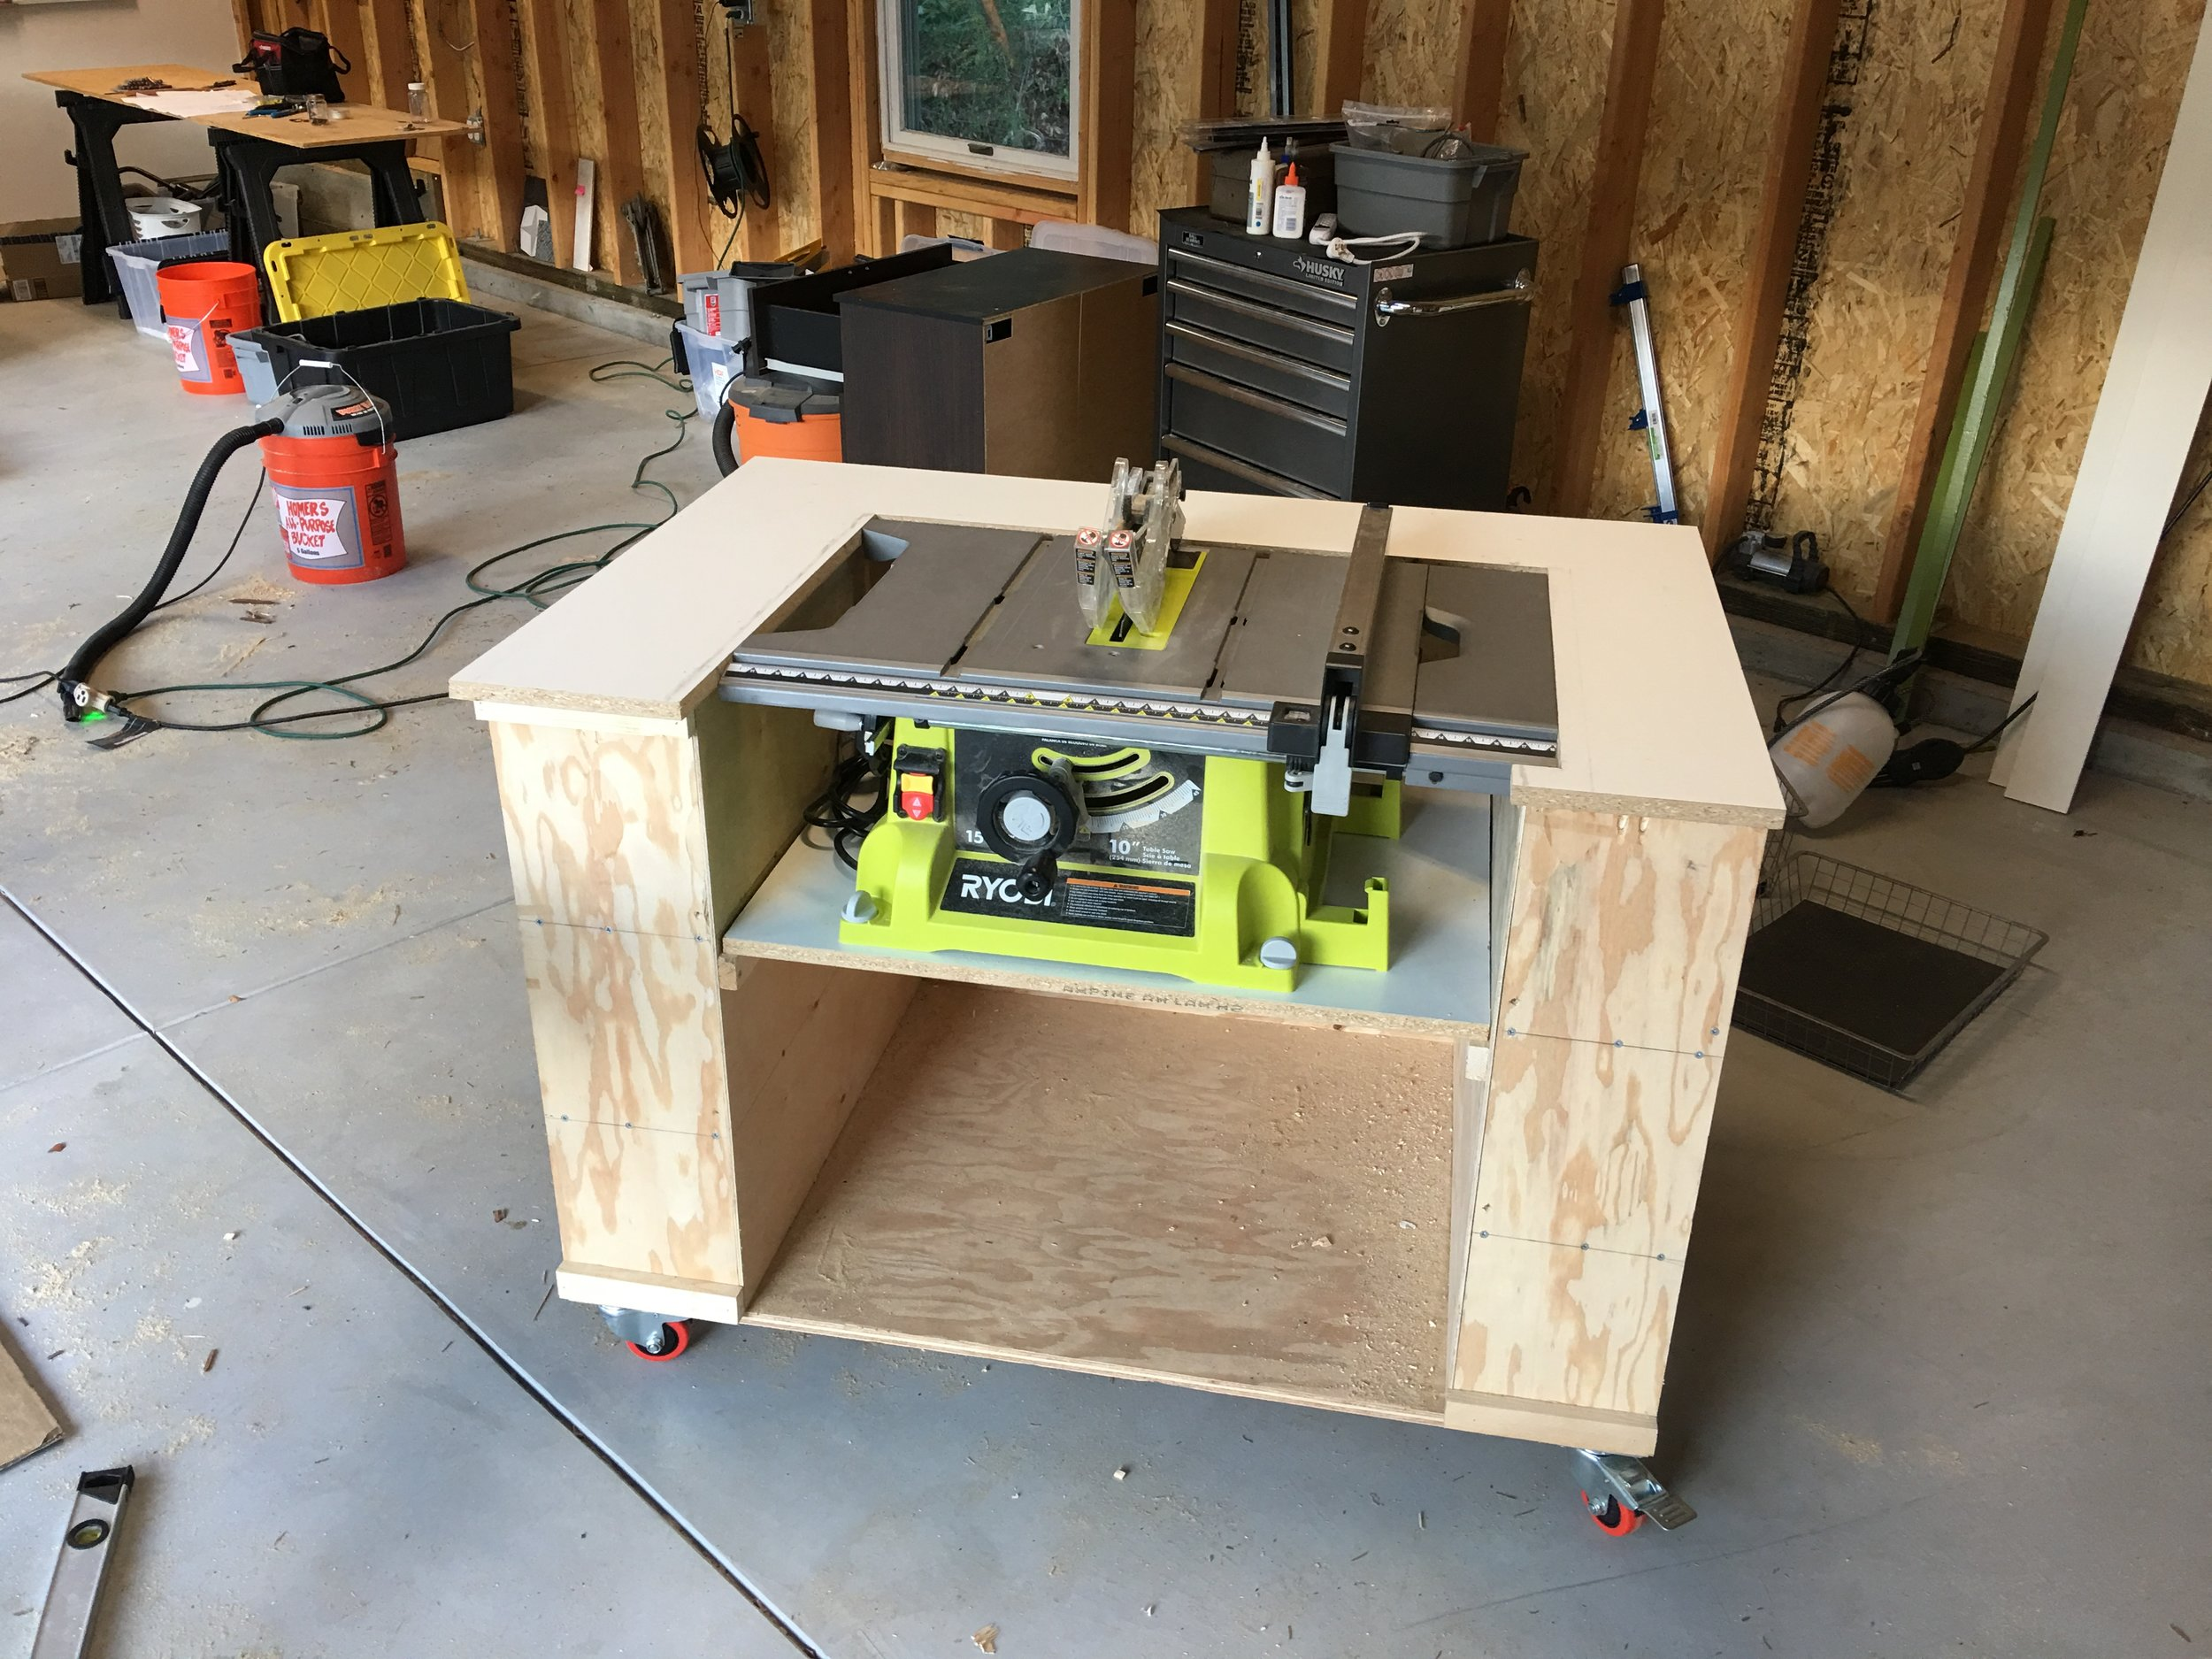 Test fit of the table saw.